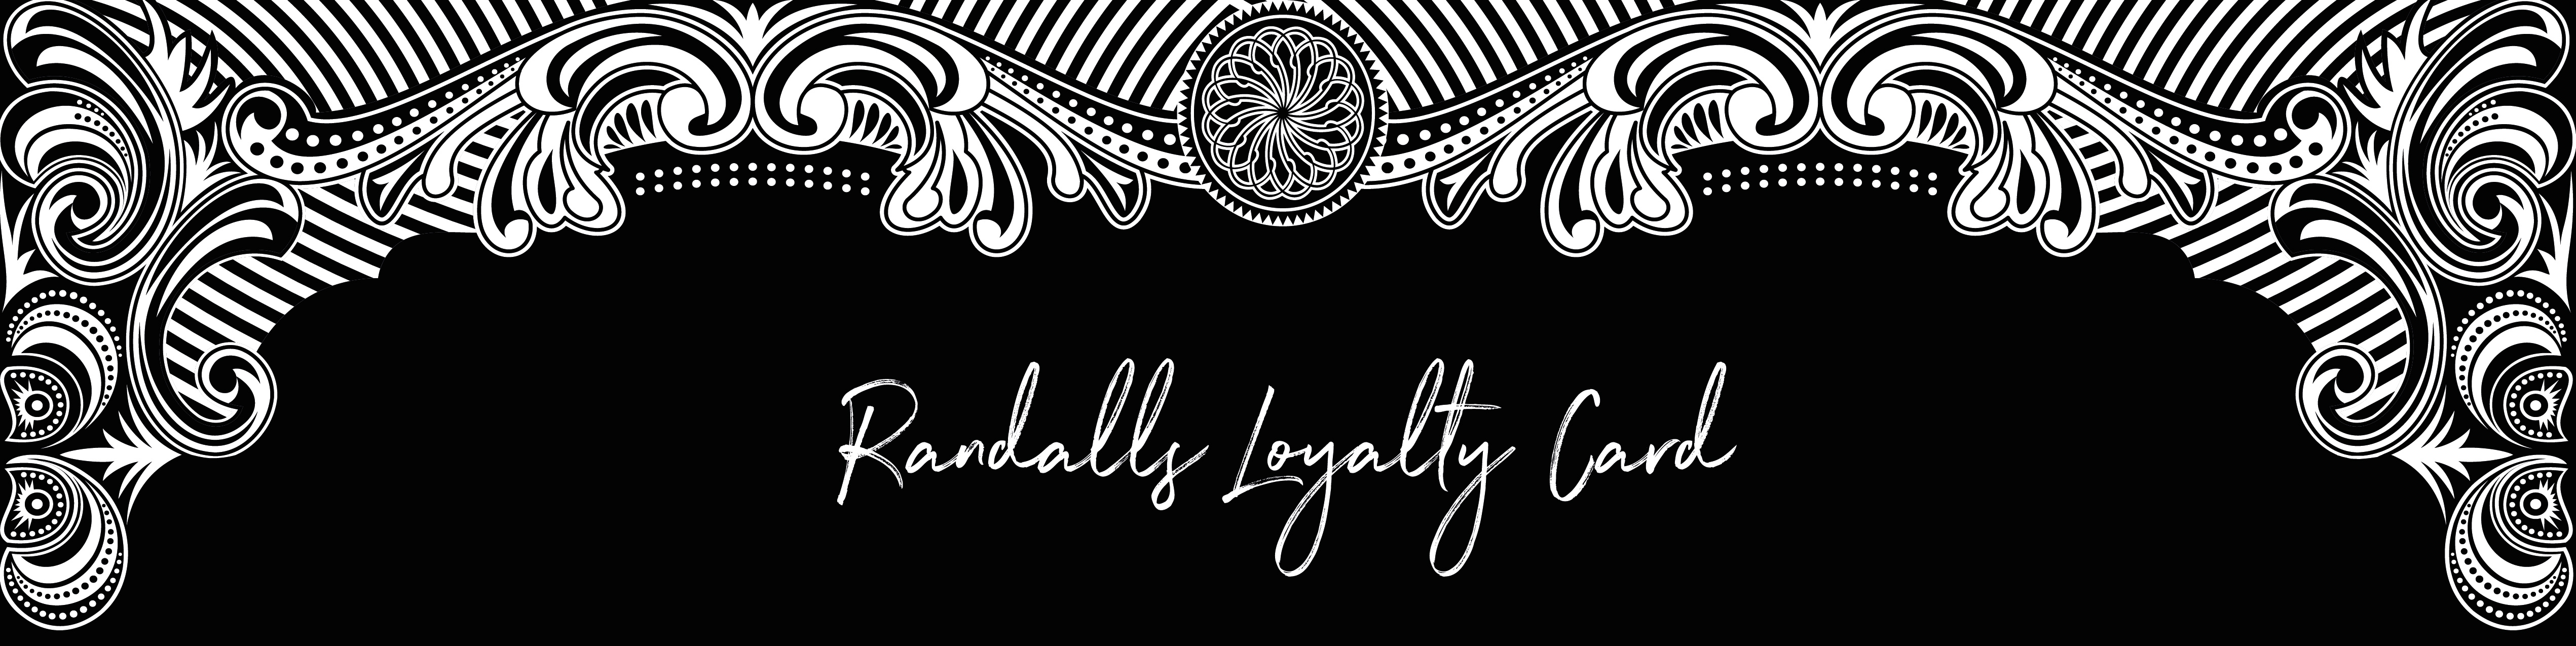 Randalls Loyalty Card